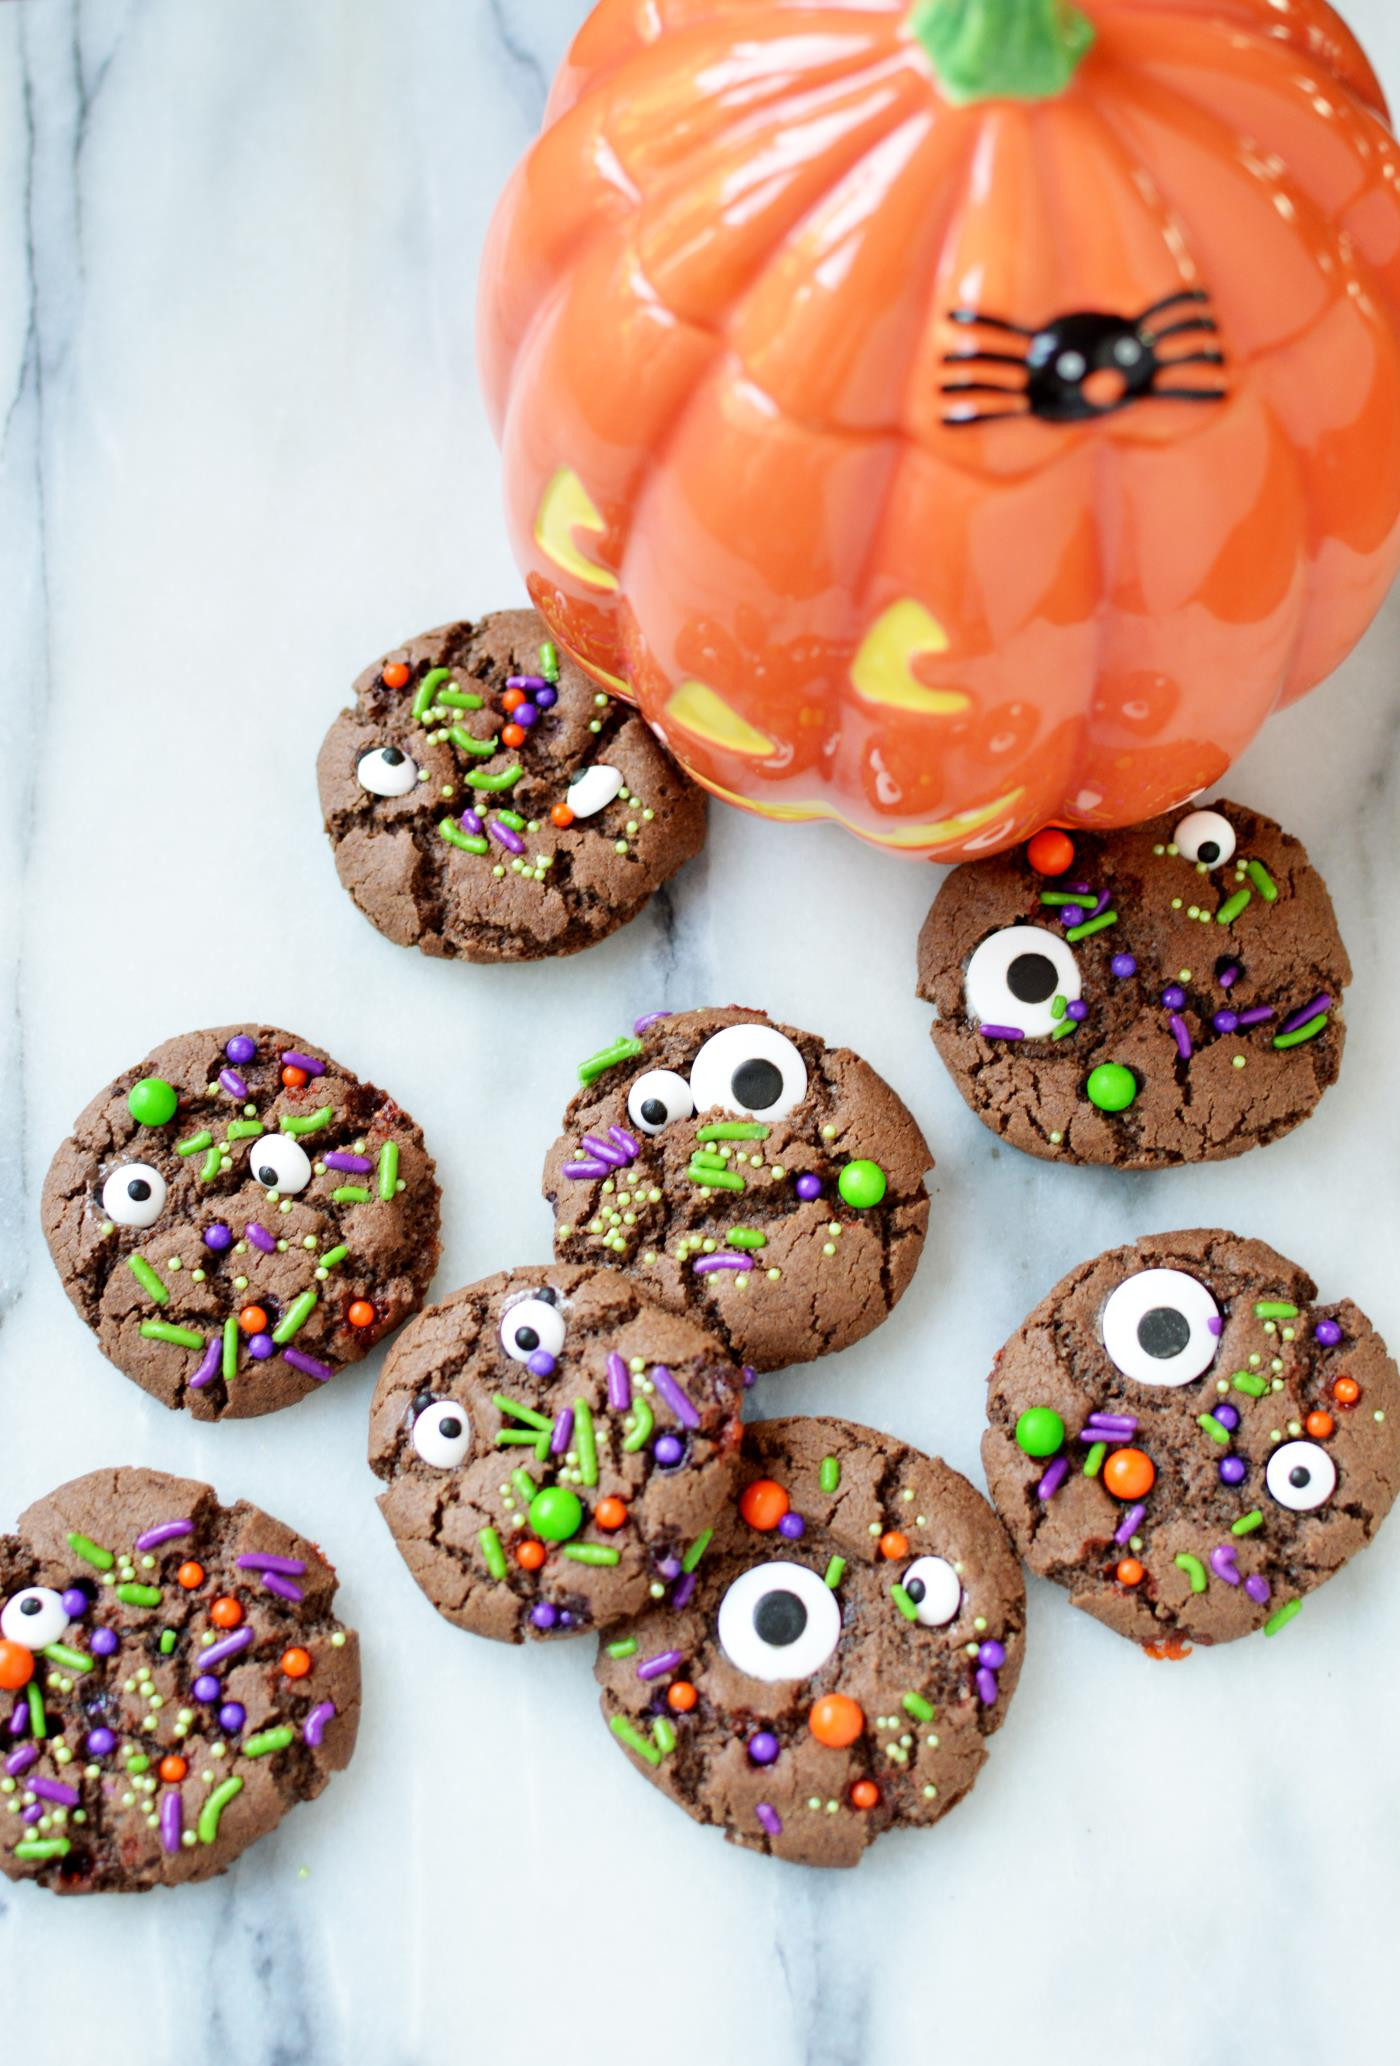 Halloween Monster Cookies  Make These Adorable Halloween Monster Cookies From Scratch